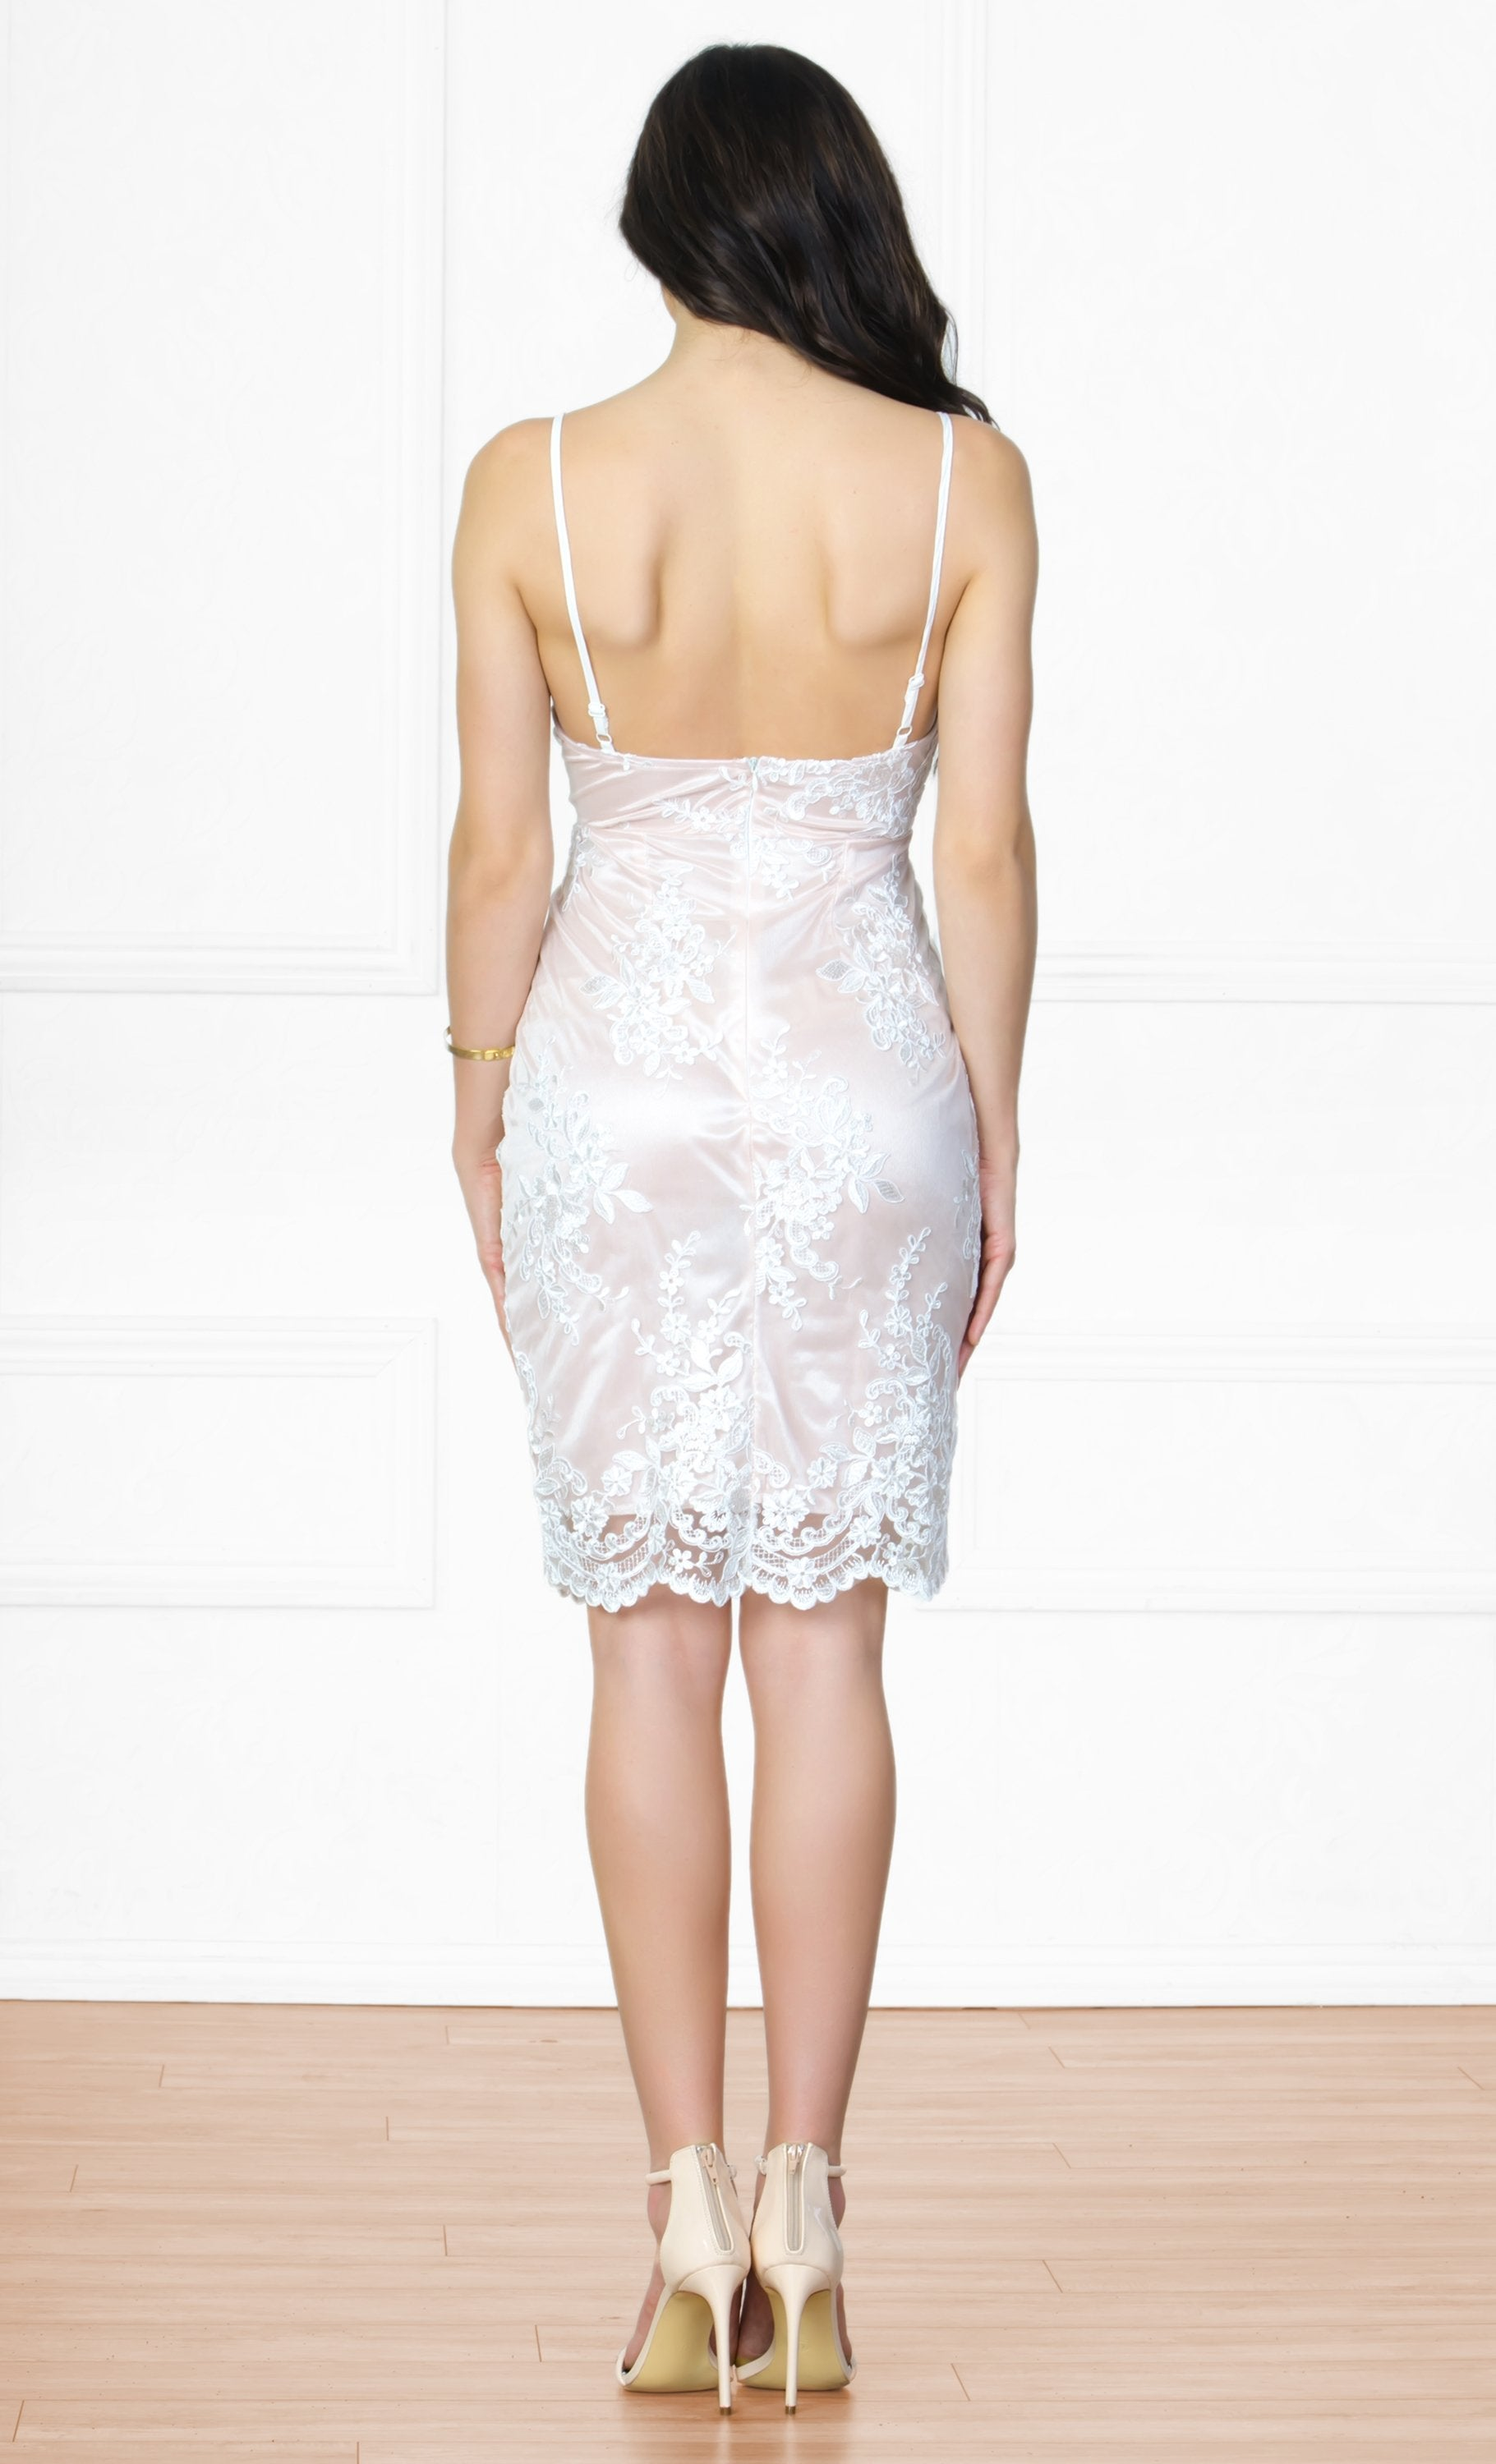 Indie XO Enticing Evening White Lace Spaghetti Strap V Neck Bodycon Midi Dress - Sold Out